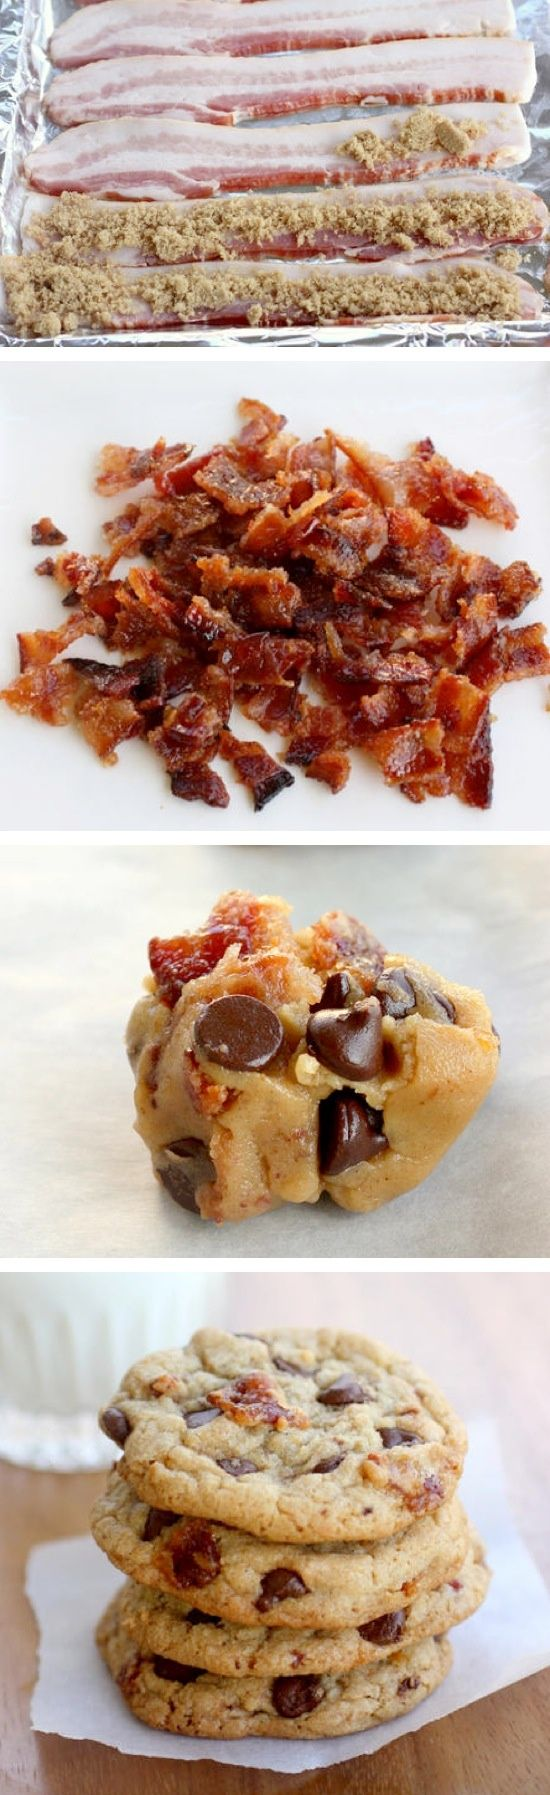 Candied Bacon Chocolate Chip Cookies...Kevin would love, anything with bacon!.